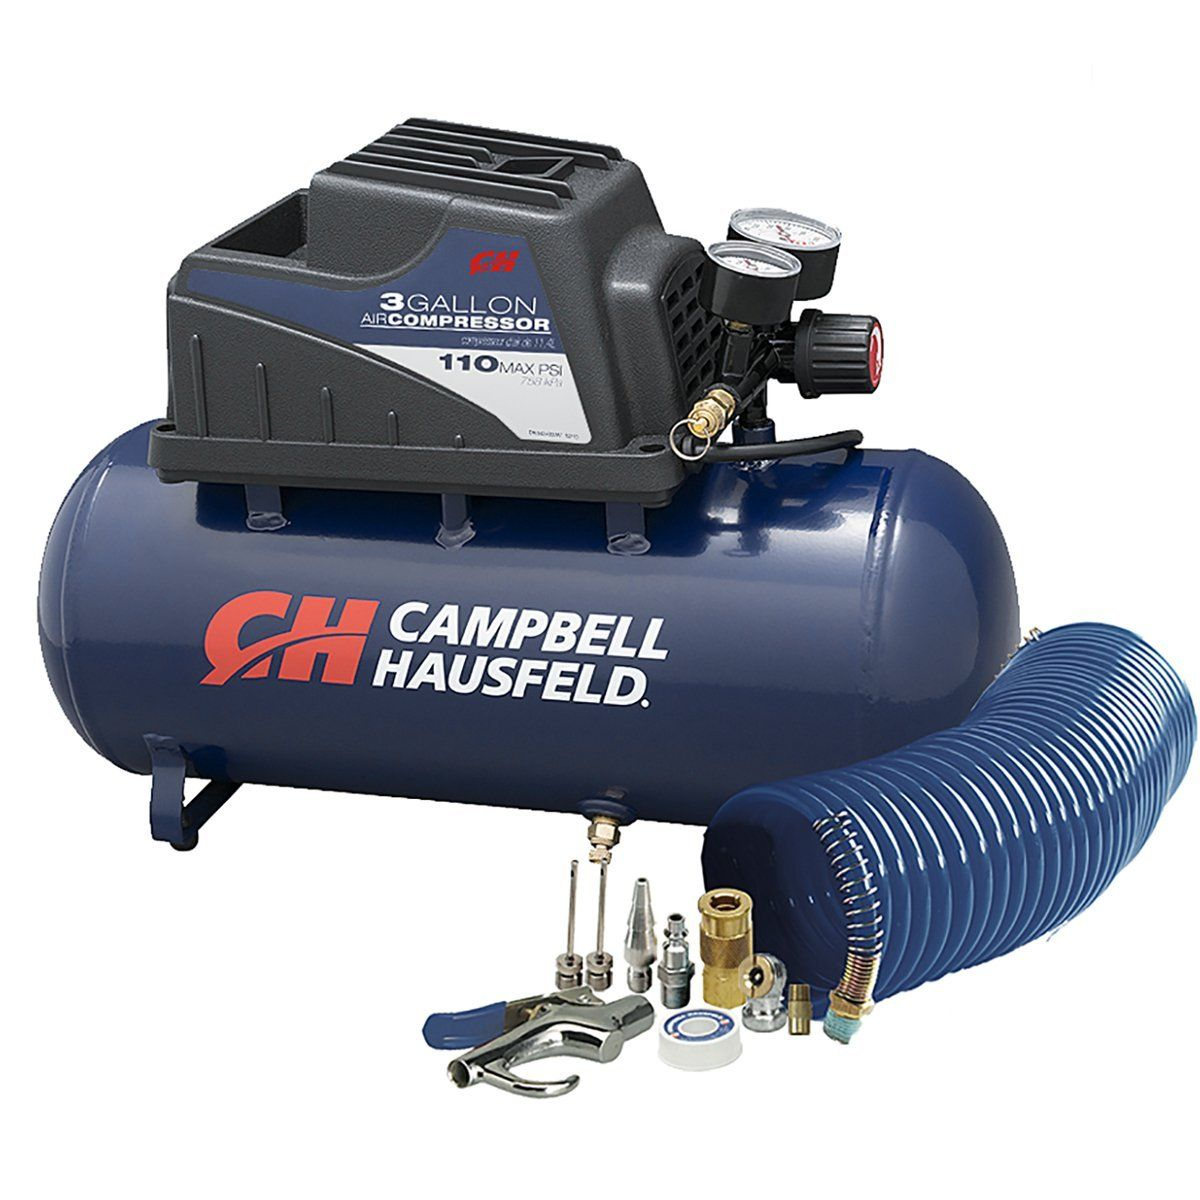 Campbell Hausfeld Air Compressor Review Best portable